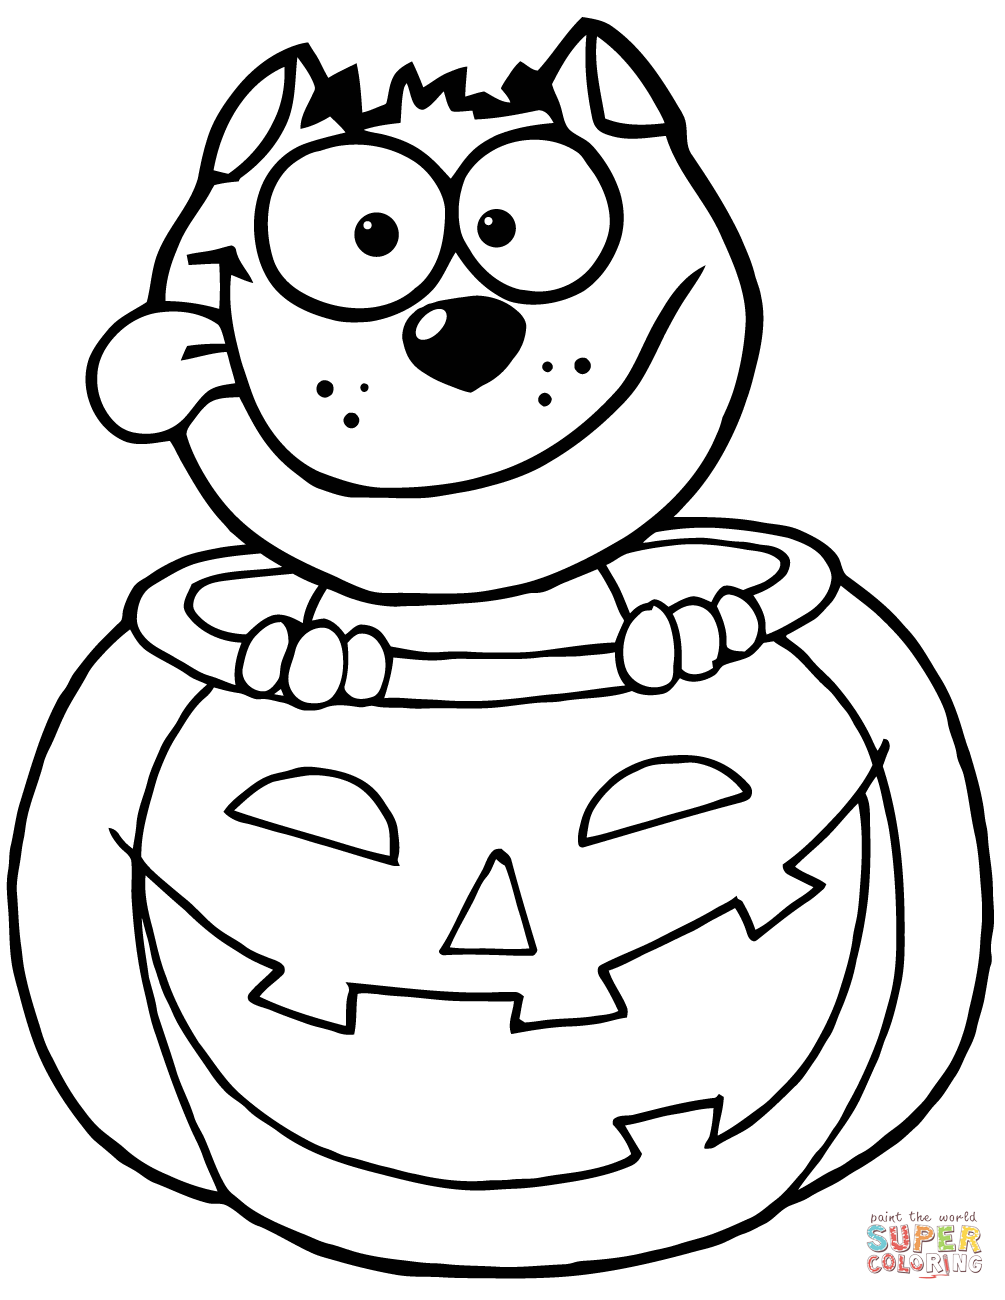 Inside clipart halloween pumpkin Free coloring Coloring pages Pumpkin